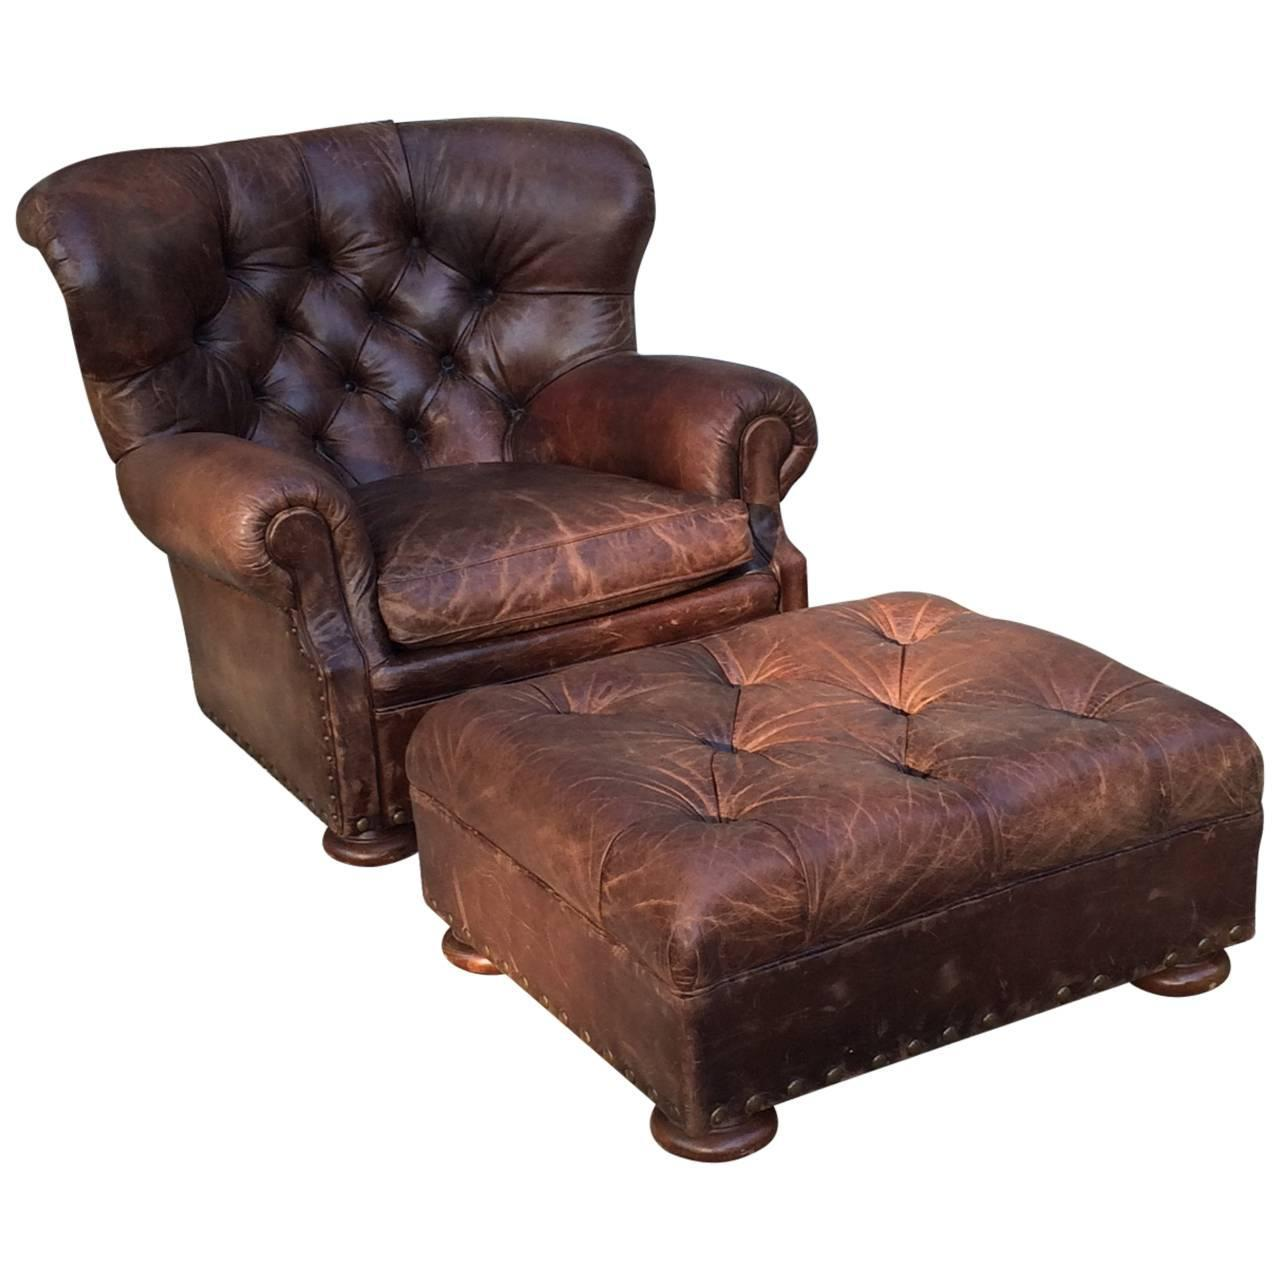 Handsome large ralph lauren button tufted club chair and for Chair ottoman